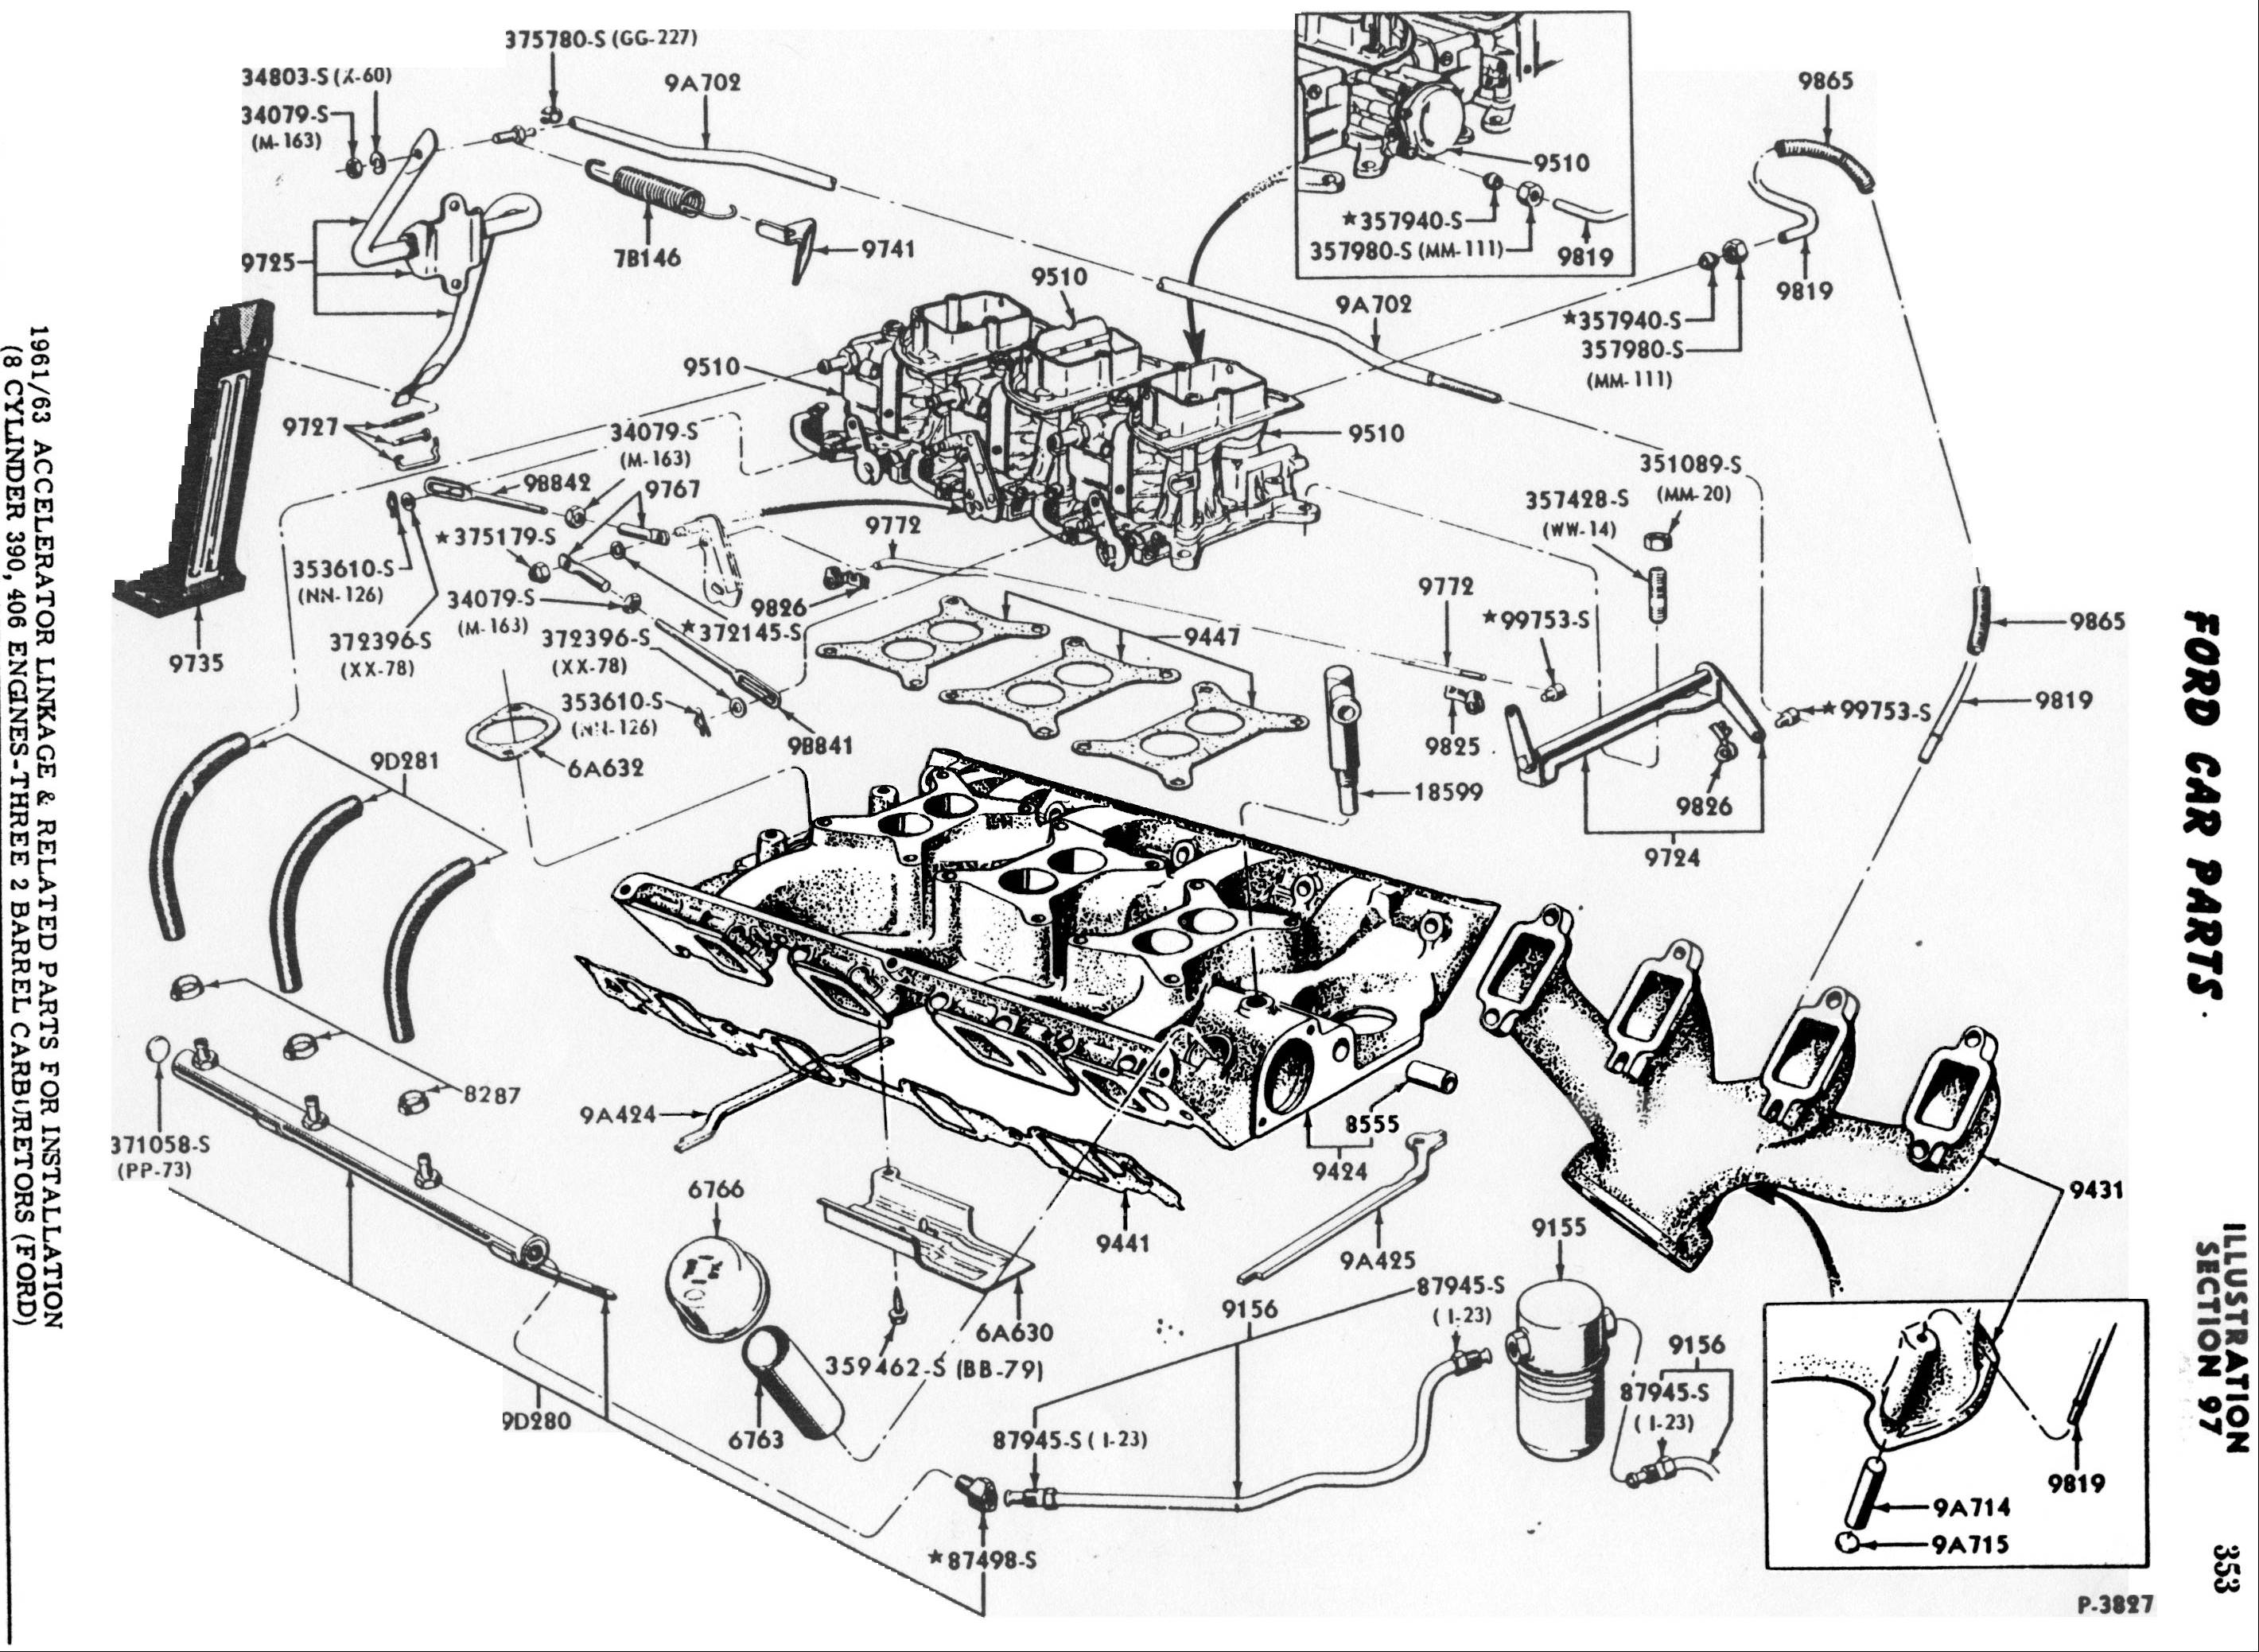 460 ford engine exploded diagram